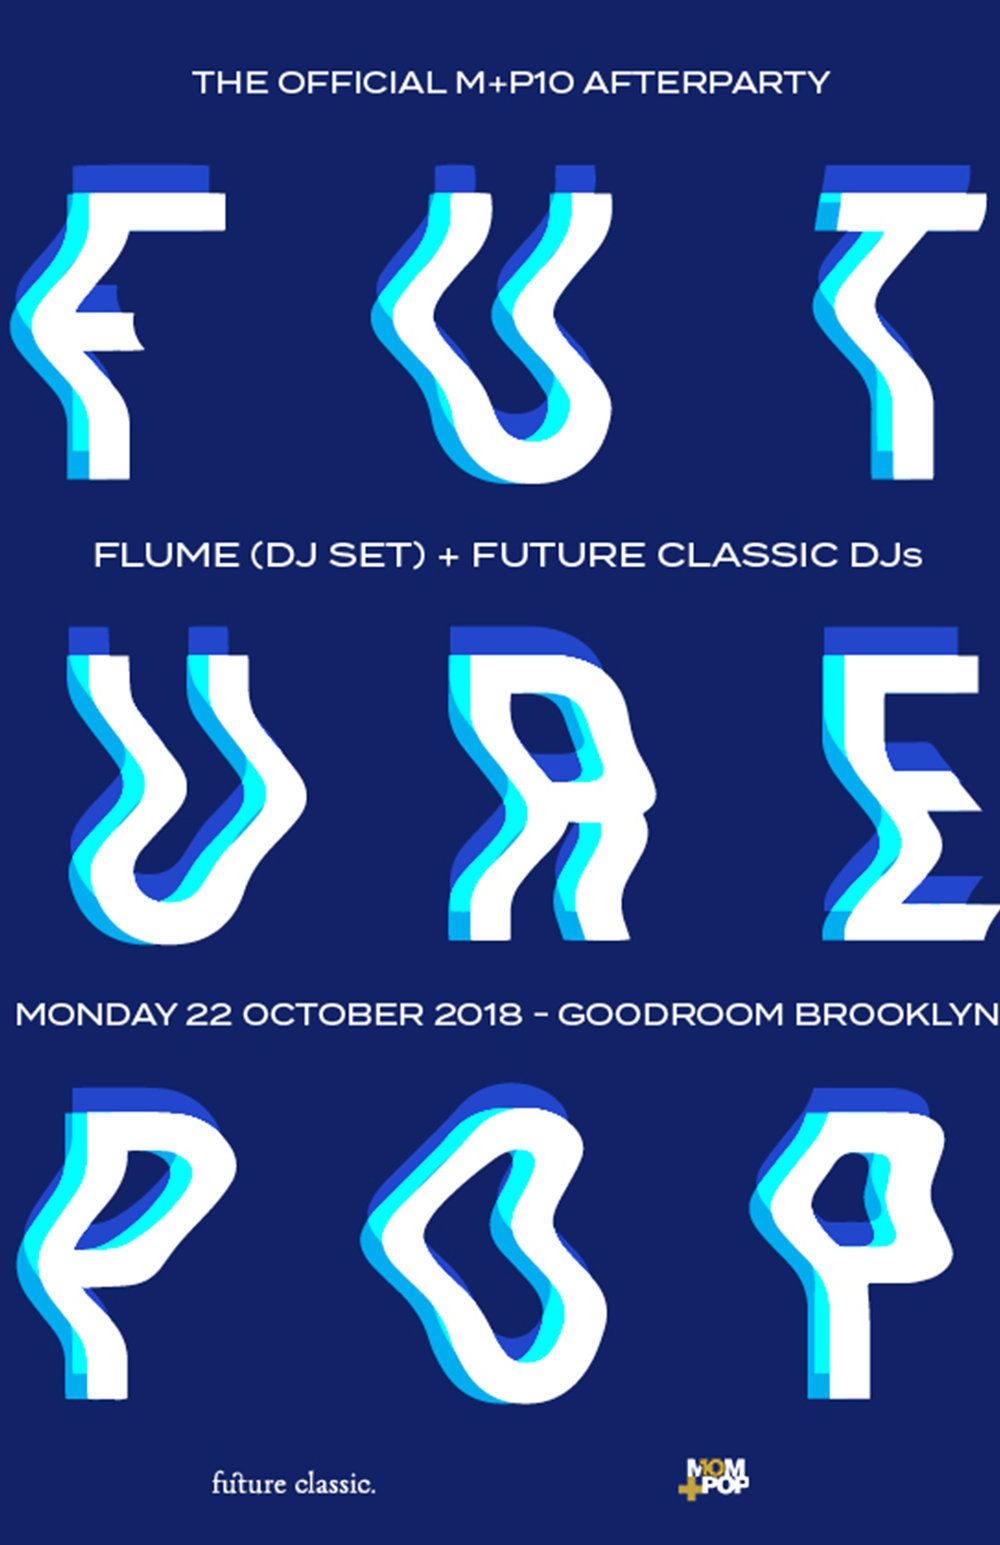 After Party - We partnered with our extended family over at Future Classic to bring you FUTURE POP, the official after party to our Anniversary Show featuring DJ sets from Flume and the Future Classic crew. See below for show info and tickets.DATE/TIME: Monday October 22nd 2018, Doors @10 pm ESTVENUE: Good Room (98 Meserole Ave, Brooklyn, NY 11222)TICKETS: SOLD OUT